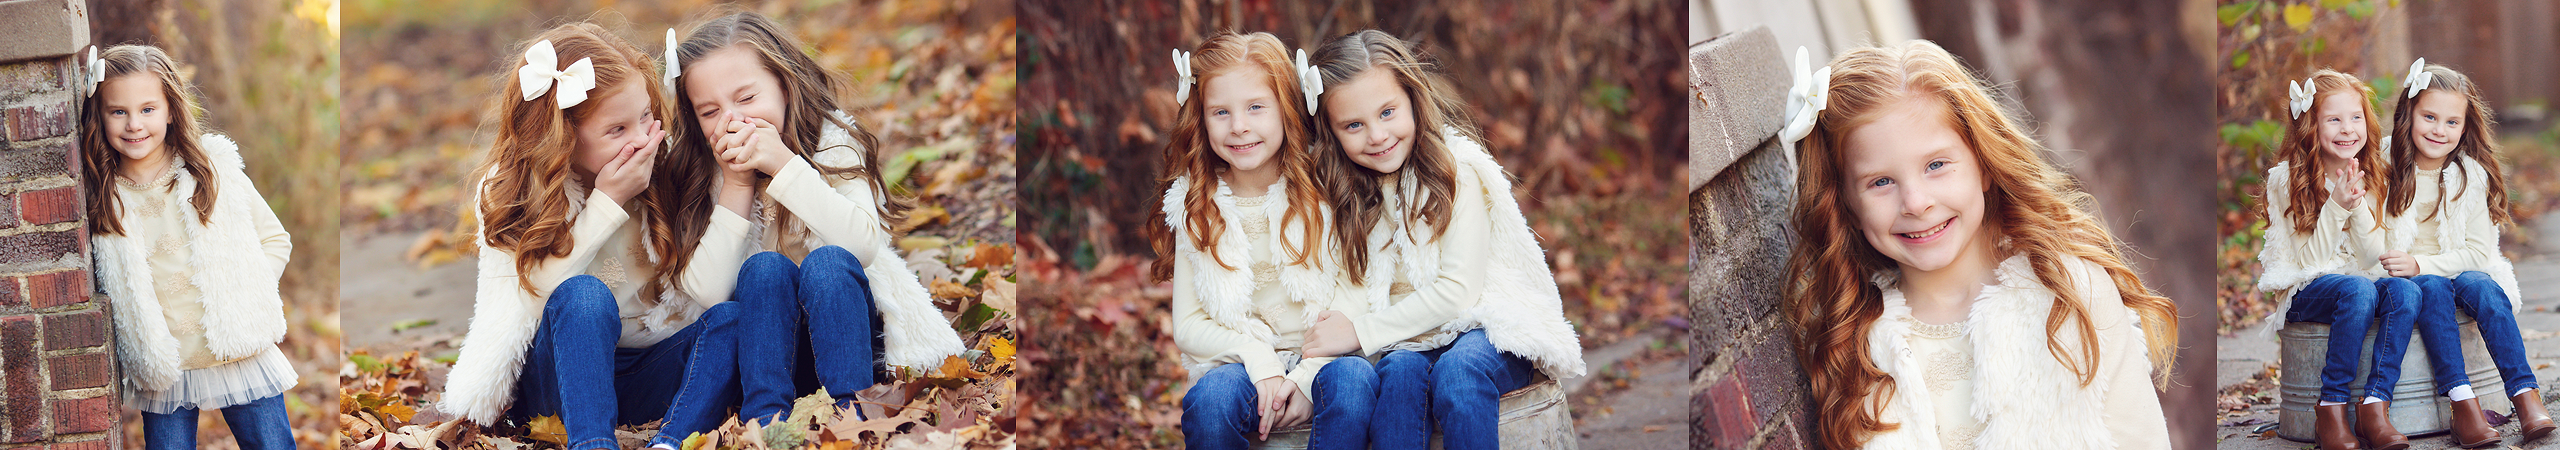 sisters laughing and smiling together nebraska kids photo session